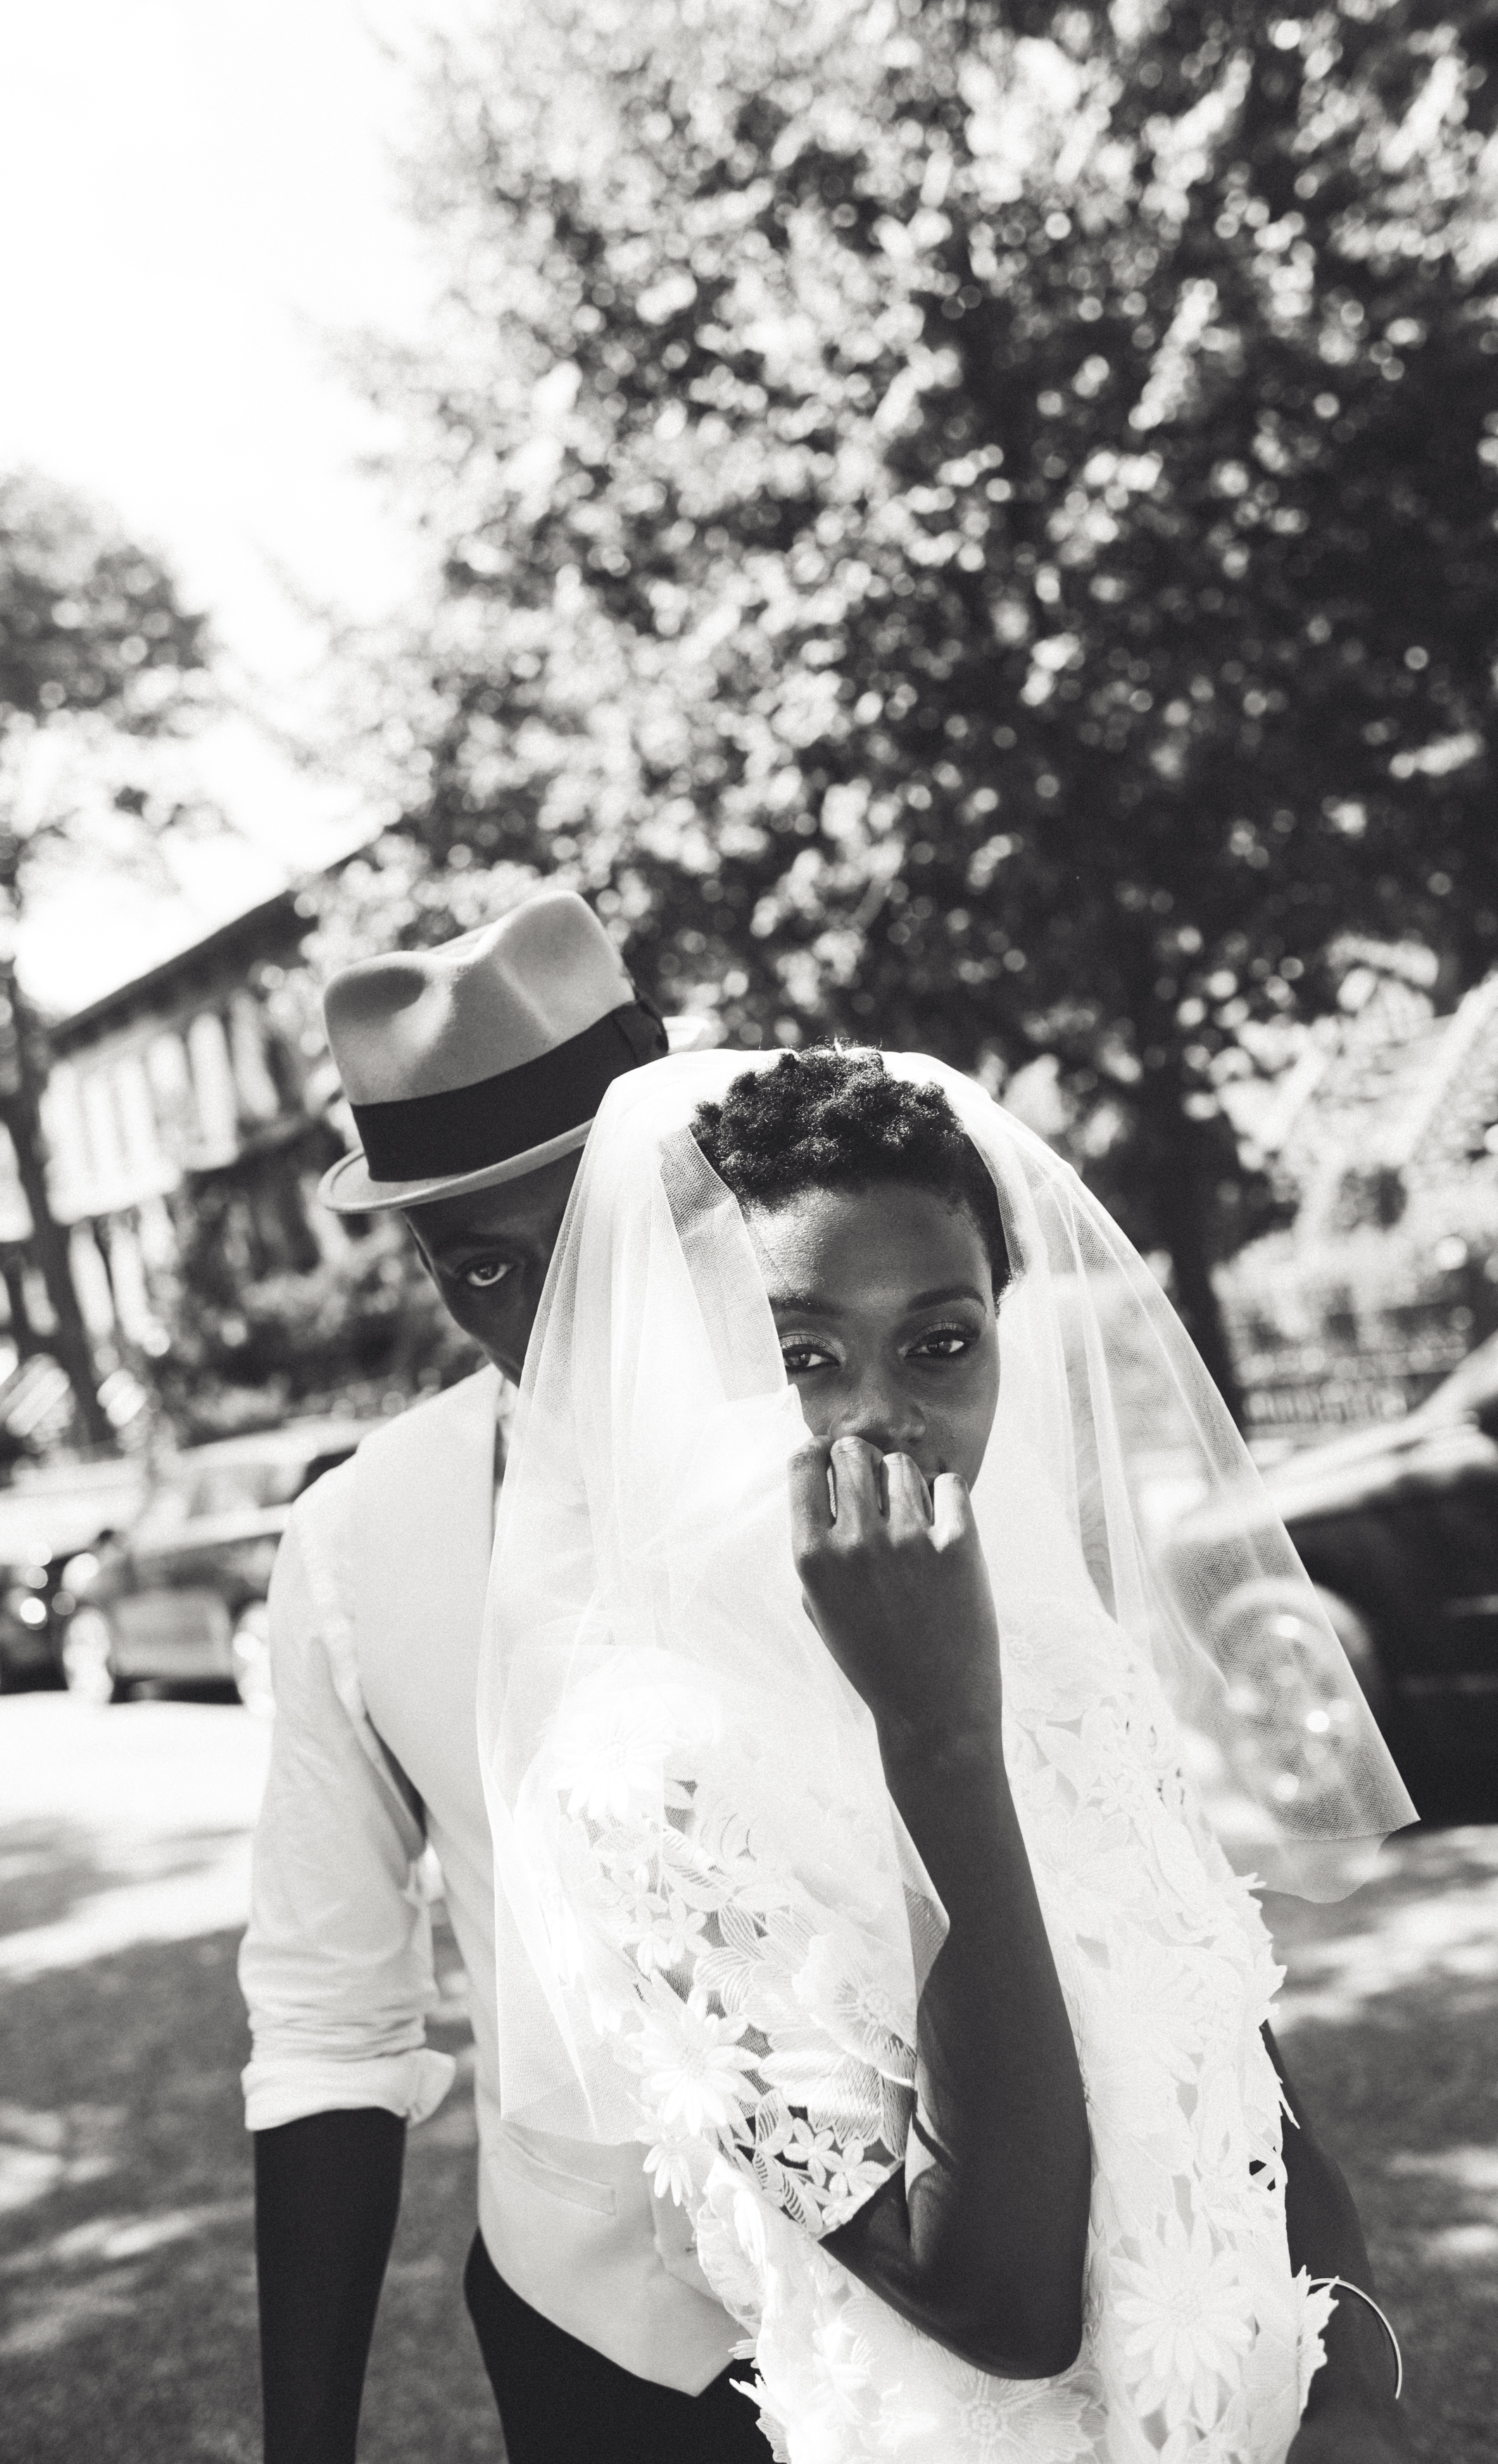 BROOKLYN BRIDE - INTIMATE WEDDING PHOTOGRAPHER - TWOTWENTY by CHI-CHI AGBIM-213.jpg